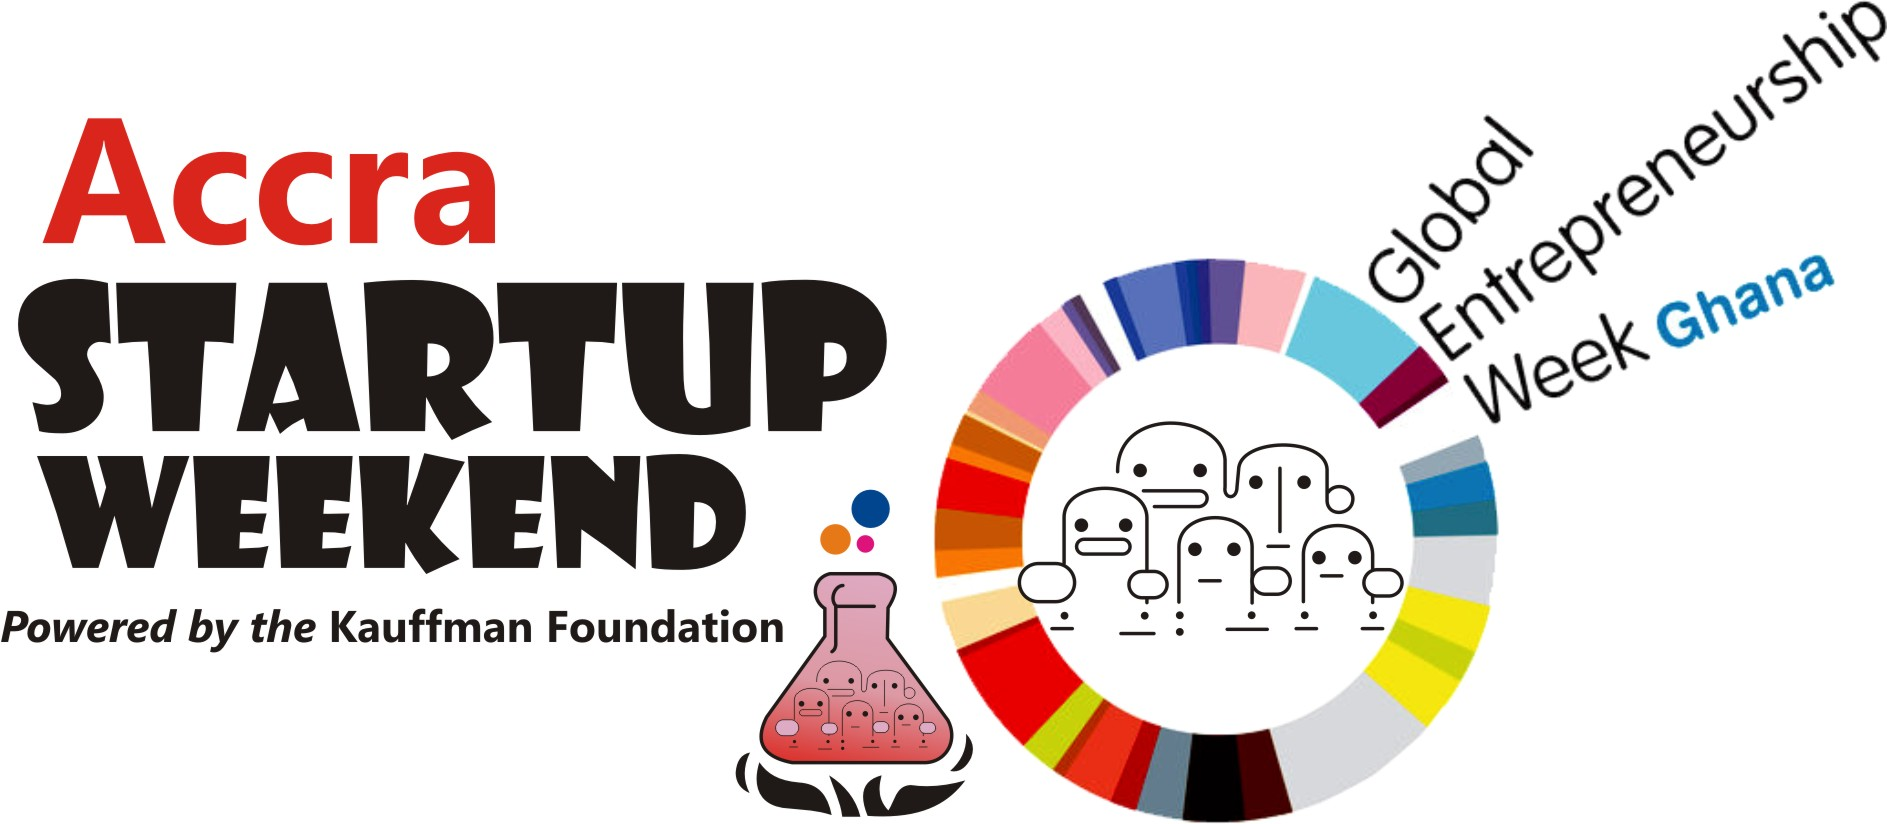 Accra Startup Weekend comes to MEST on Nov 22nd